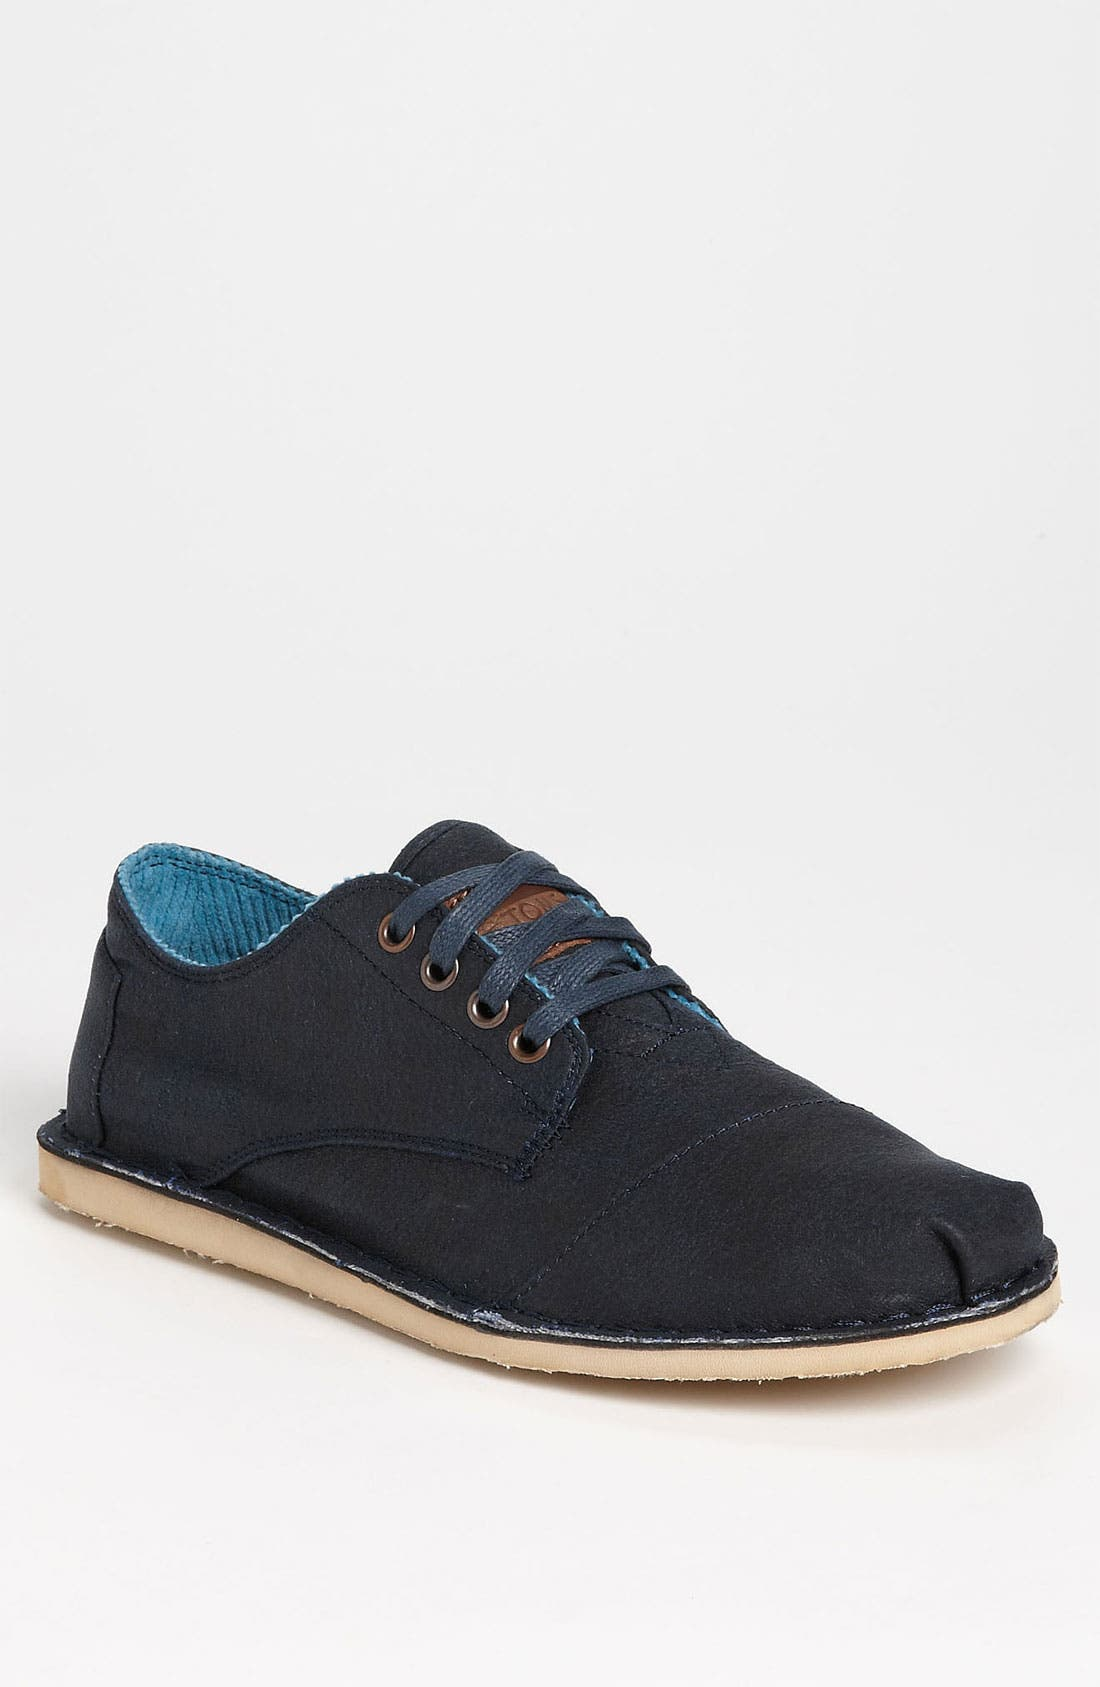 Main Image - TOMS 'Desert - Heritage' Oxford (Men)